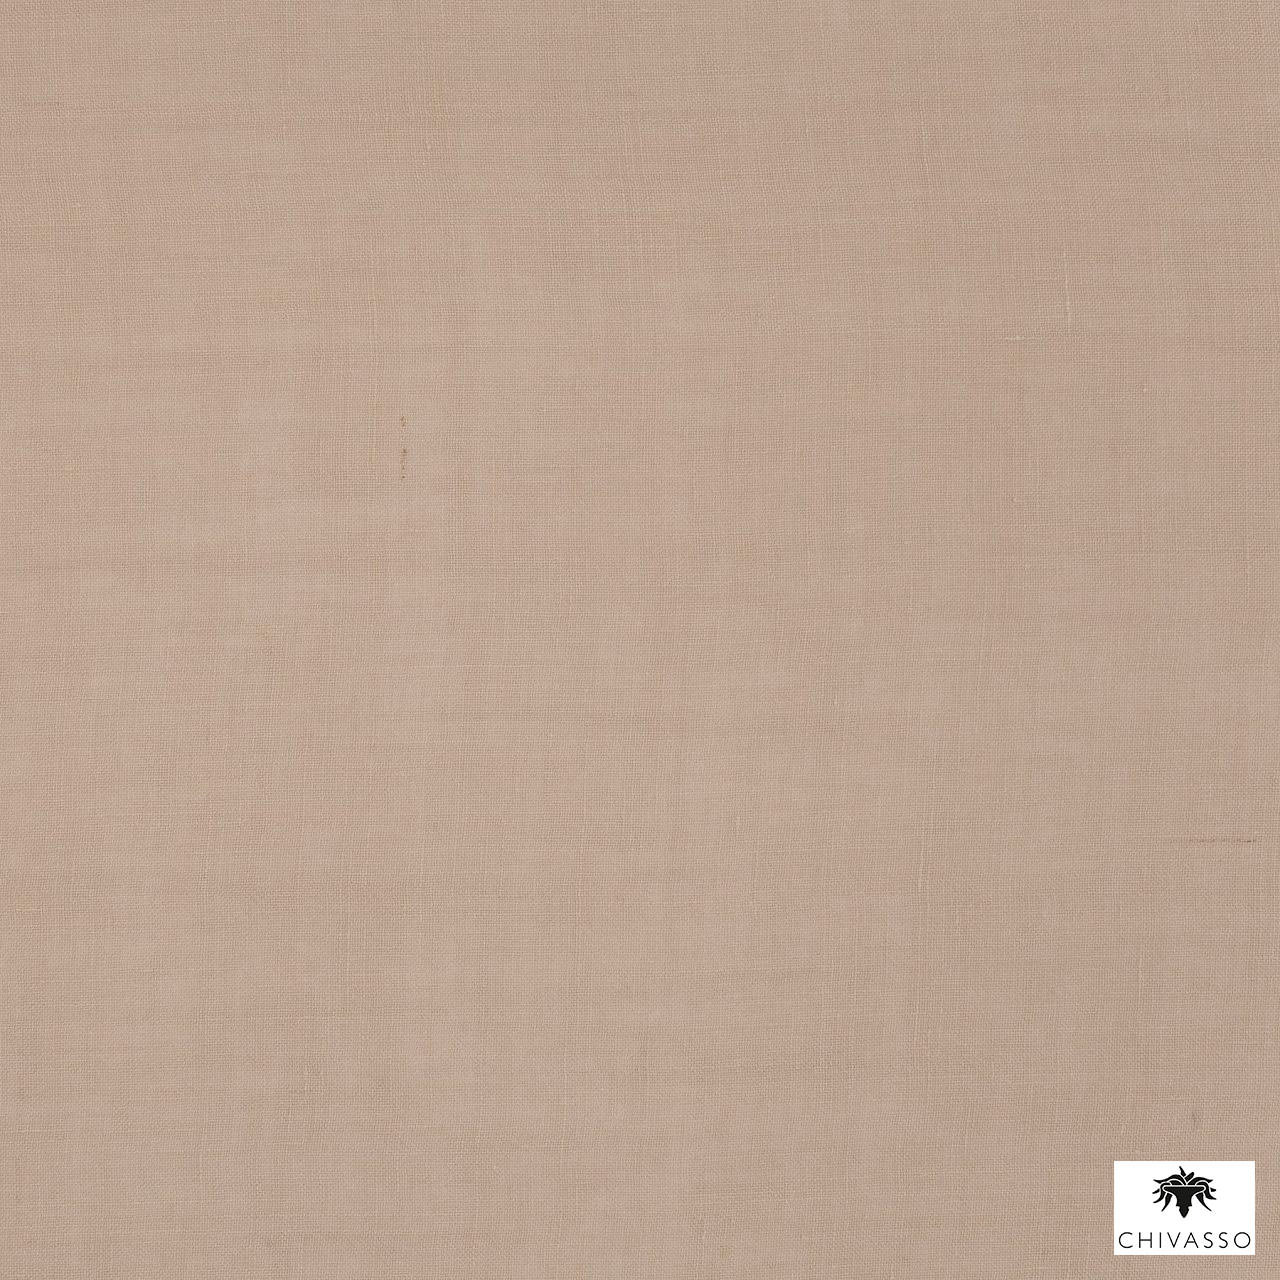 Chivasso - Target - Ch2743-072  | Curtain Fabric - Brown, Plain, Fibre Blends, Tan, Taupe, Domestic Use, Railroaded, Wide Width